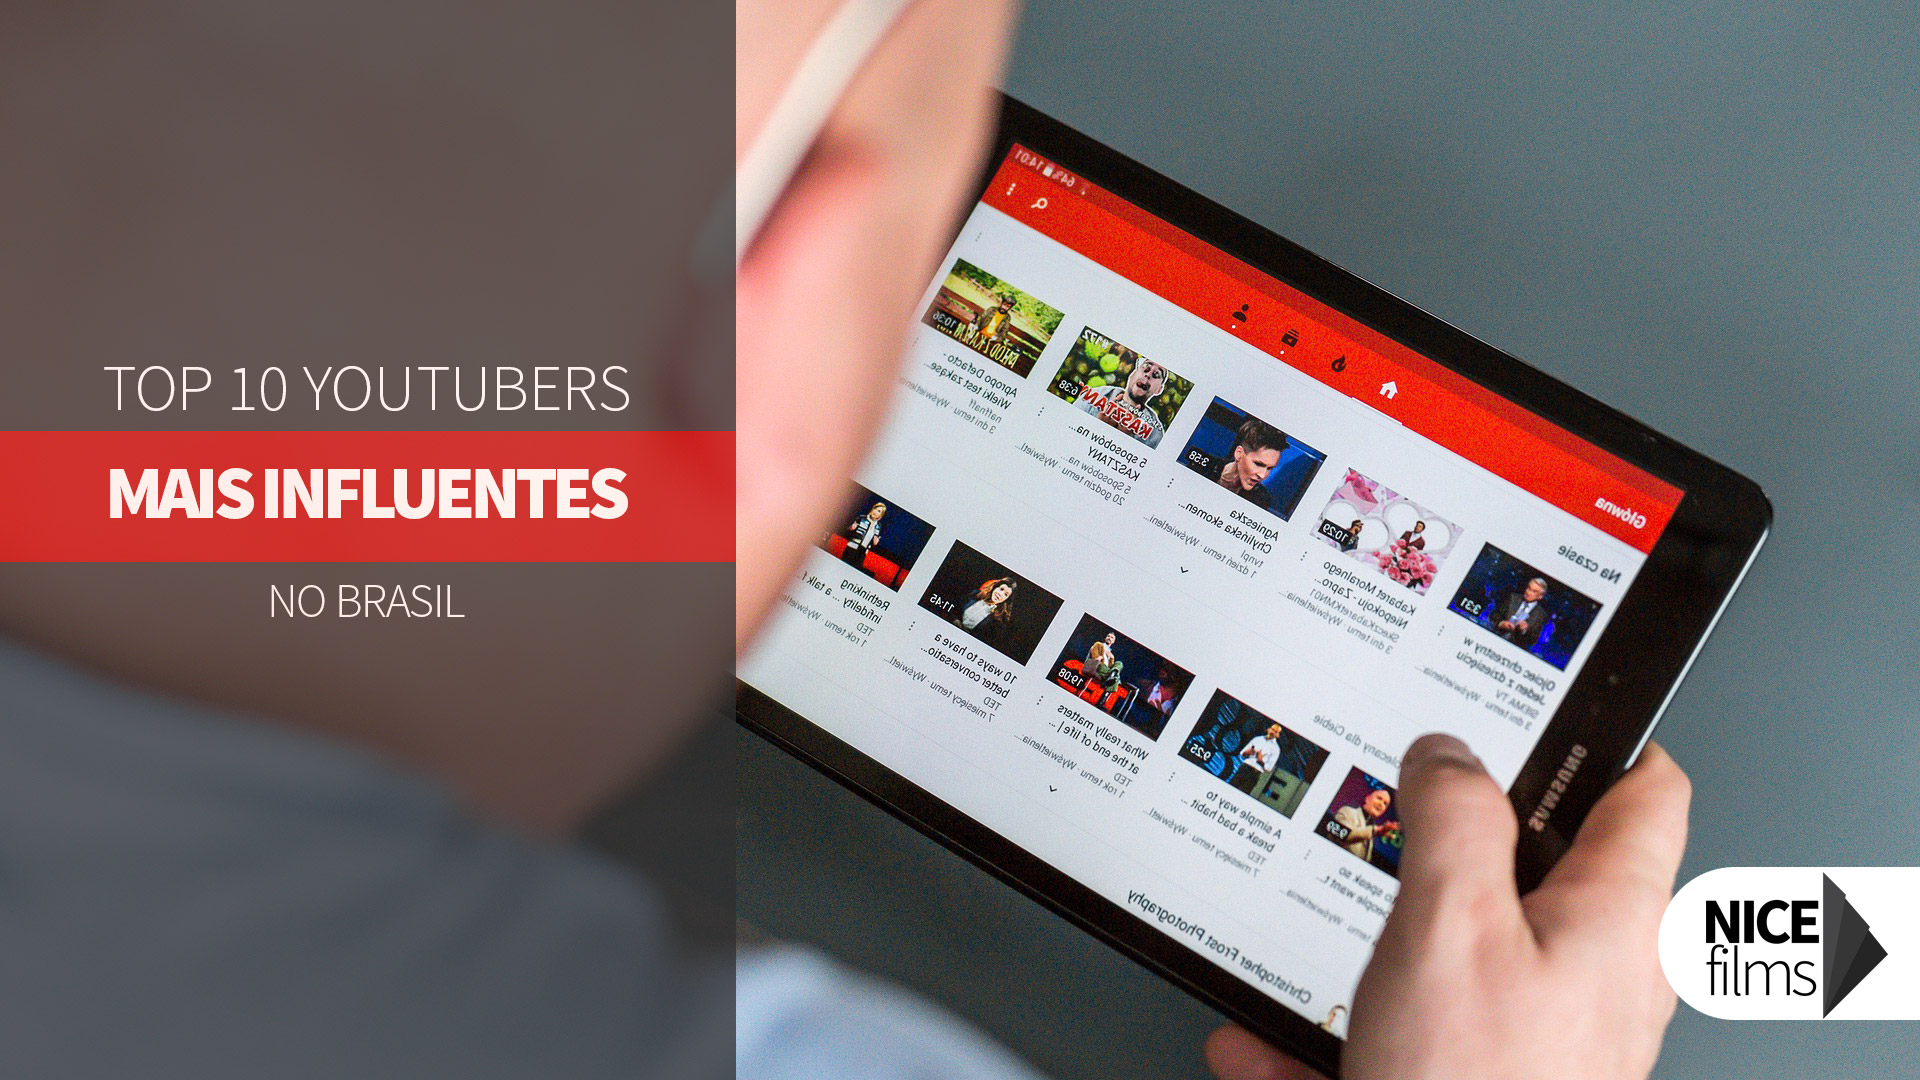 Os 10 Youtubers mais influentes do Brasil